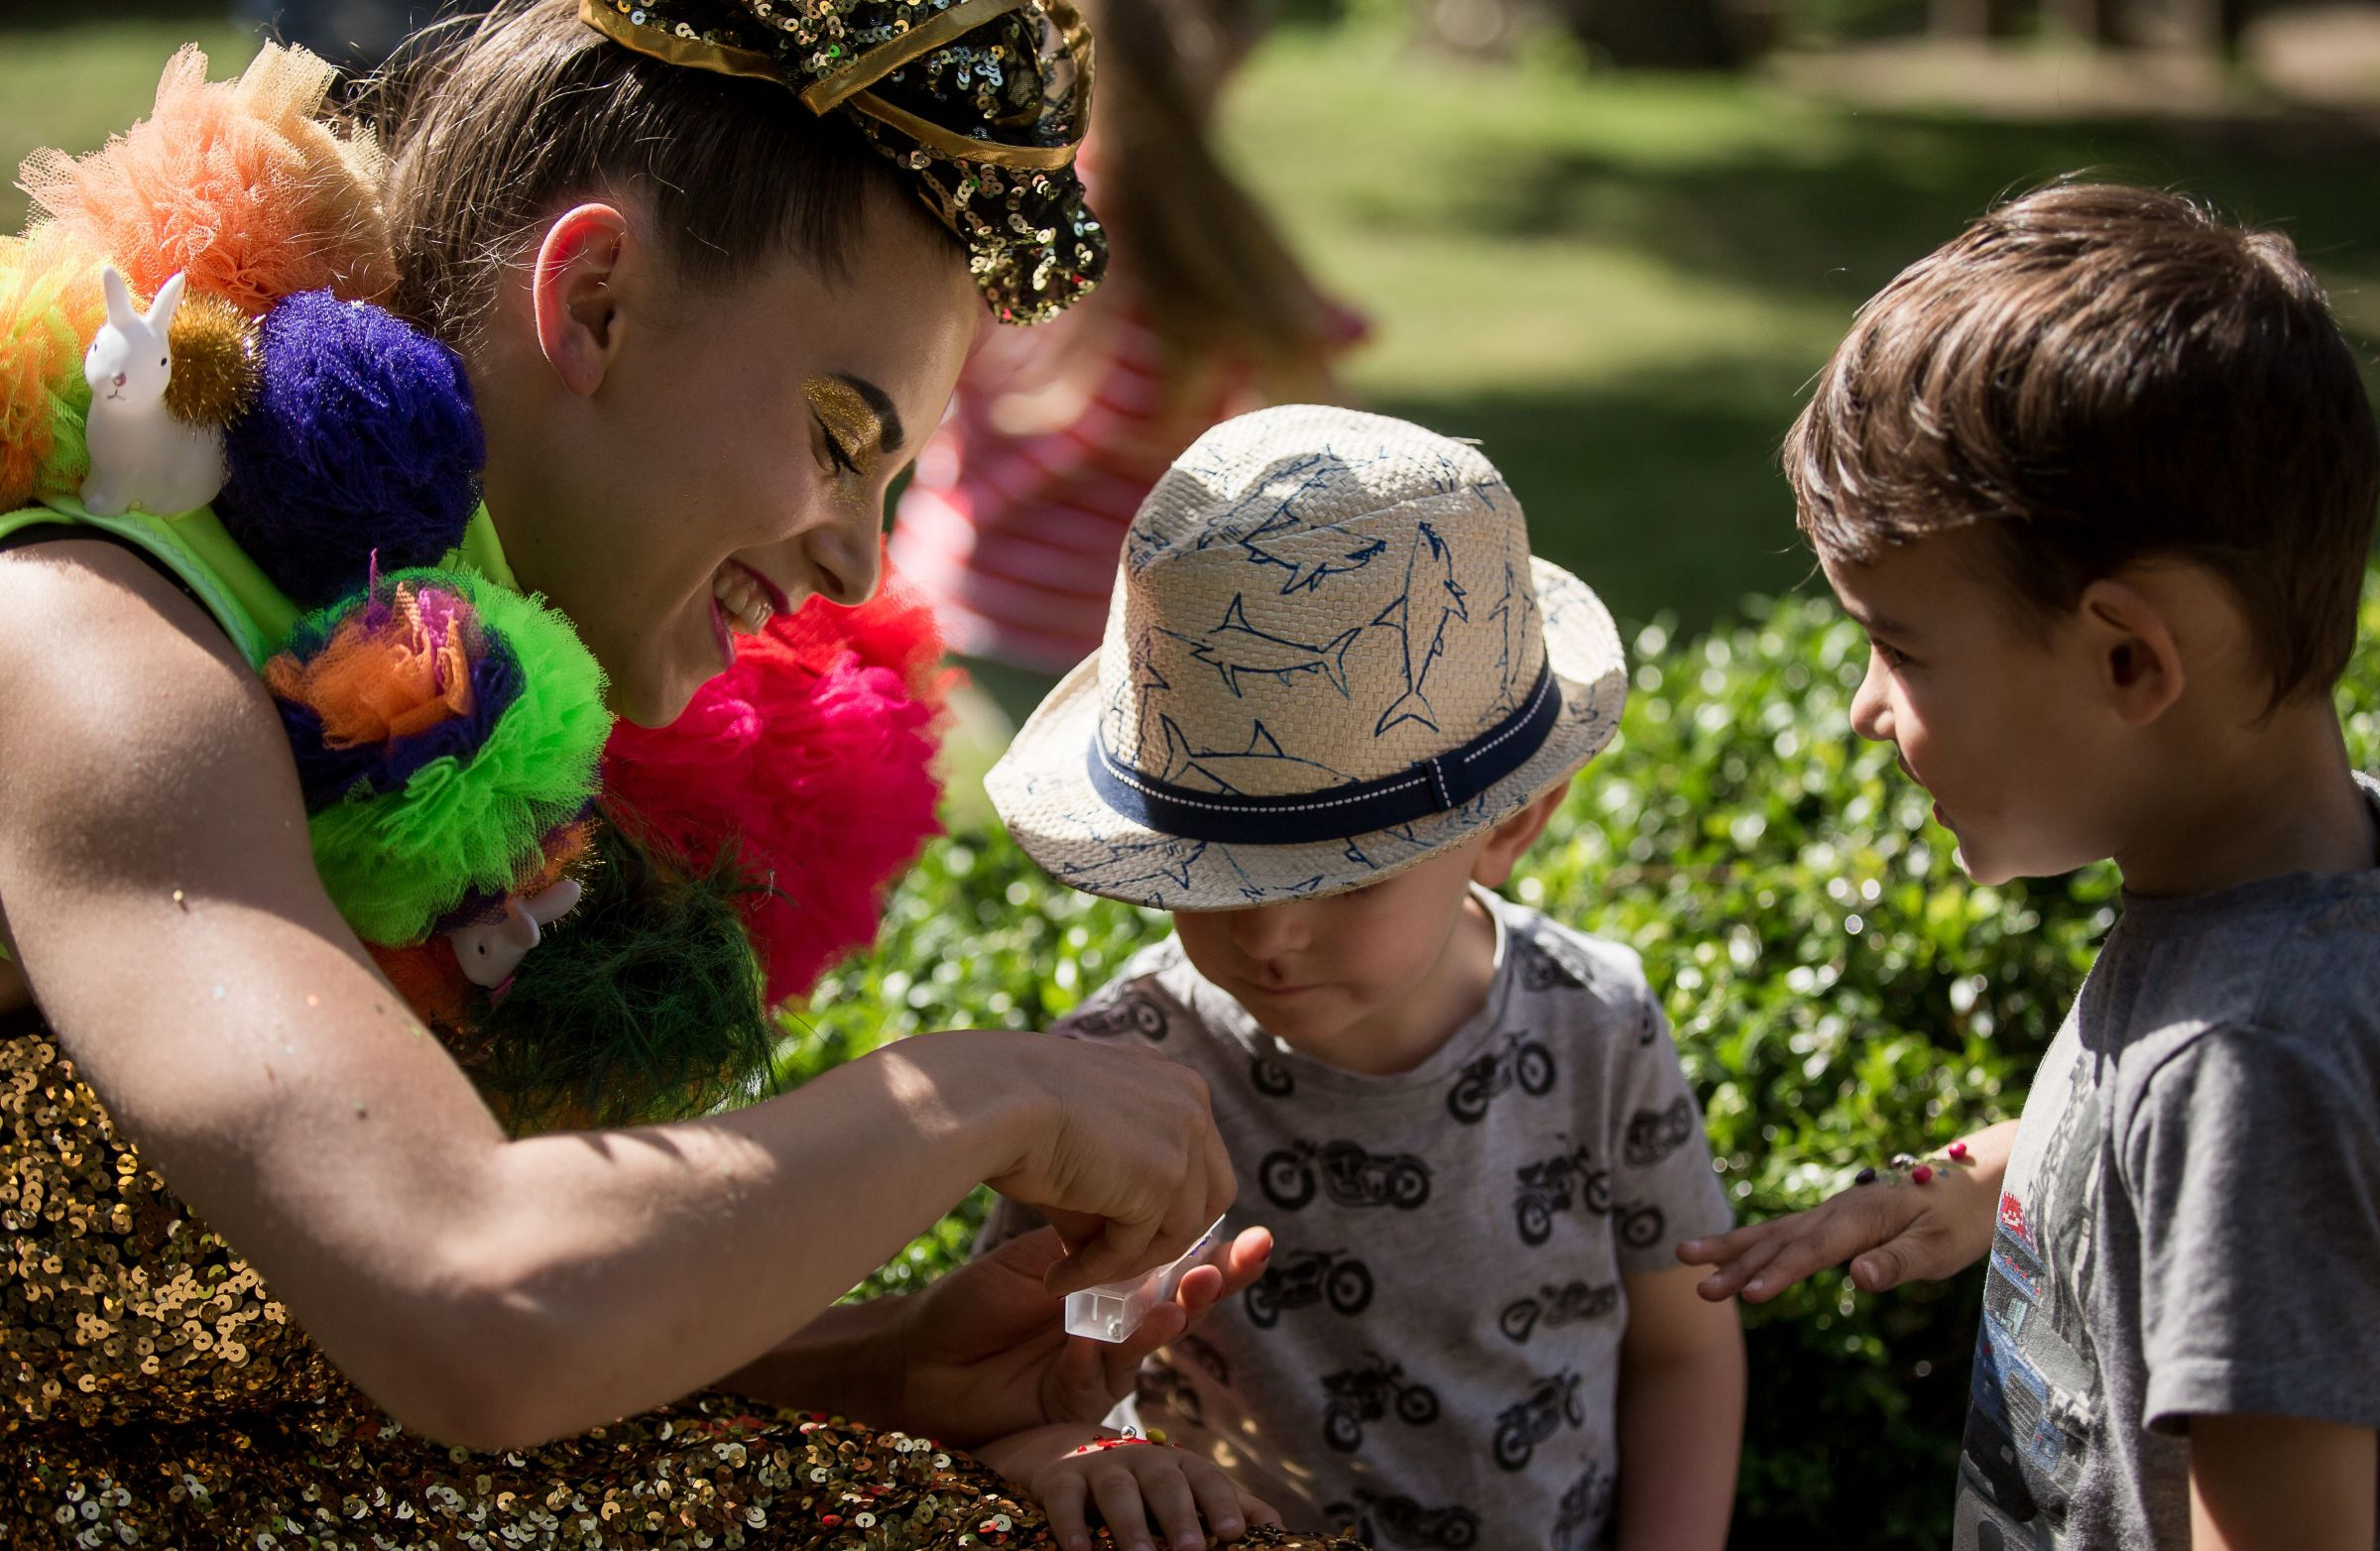 A female performer gives sweets to children